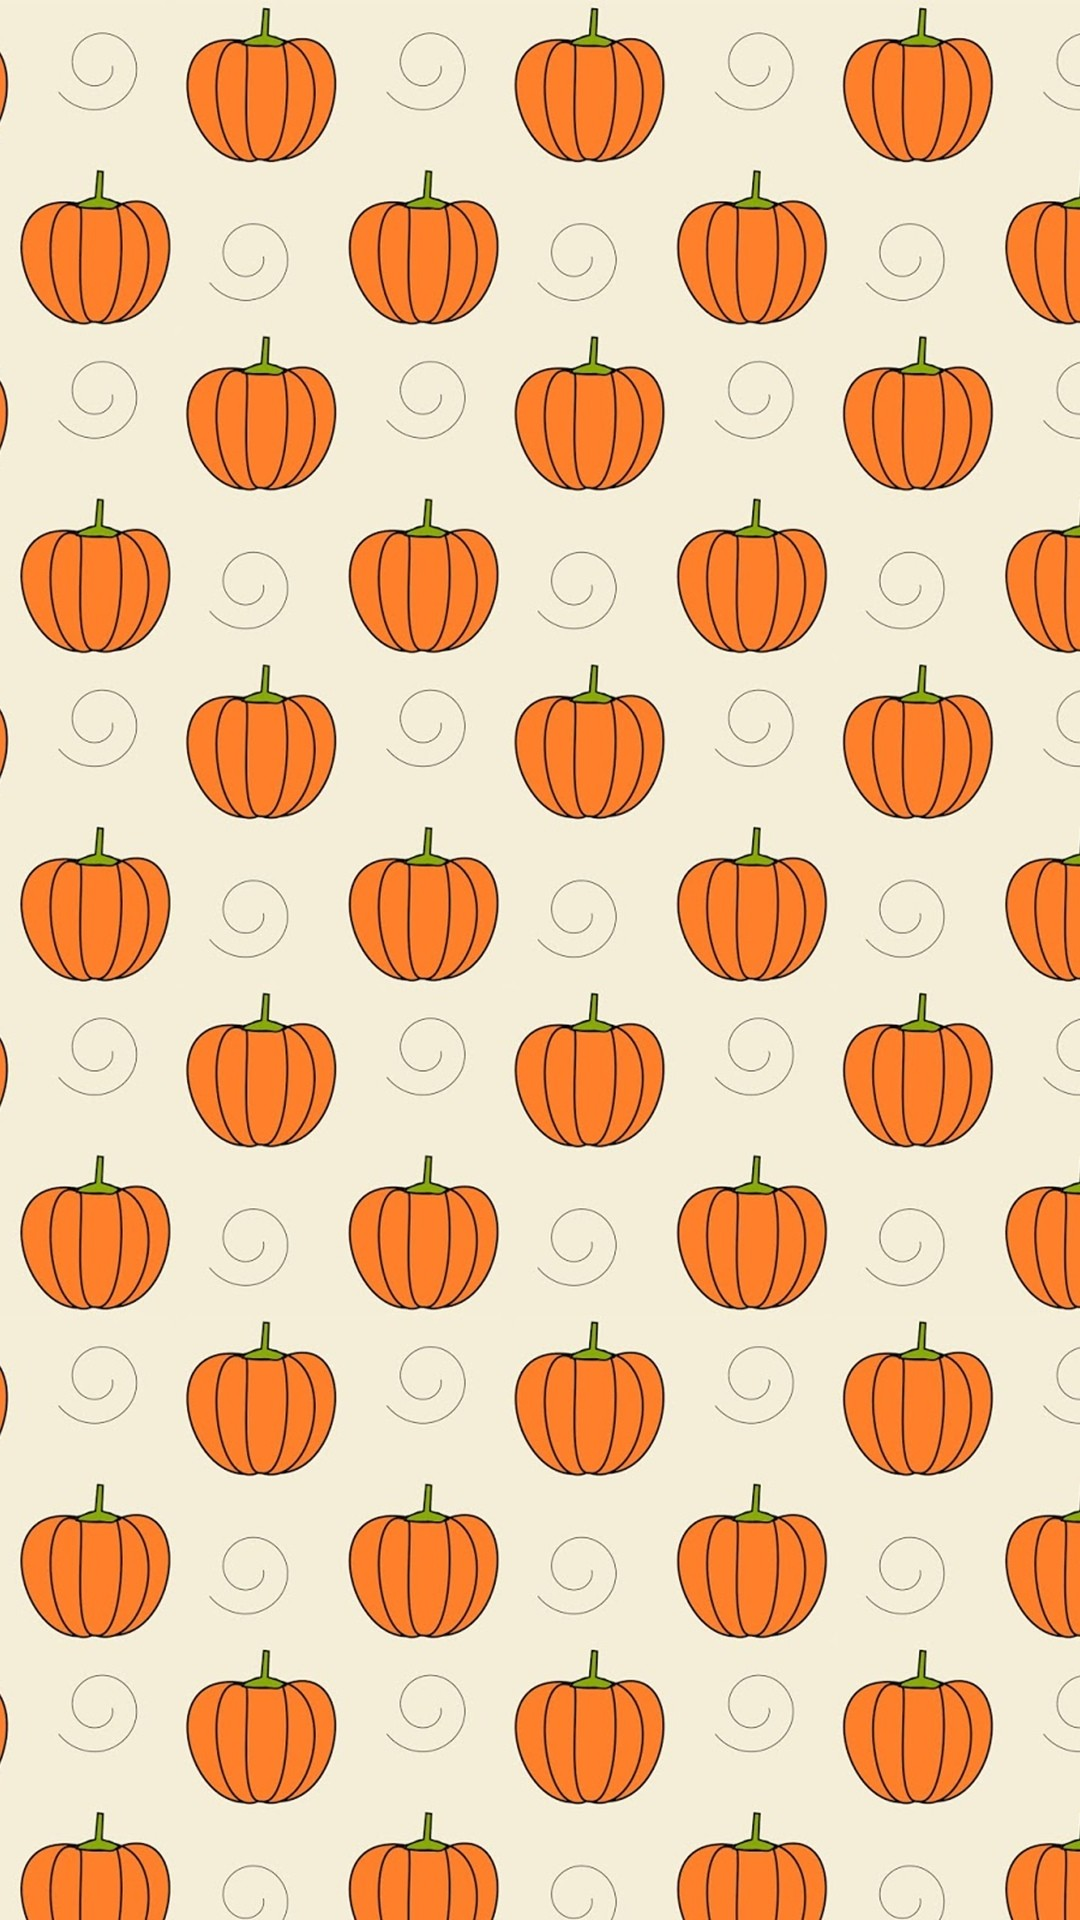 1080x1920 Pumpkins - Tap to see more cute halloween wallpaper! | @mobile9